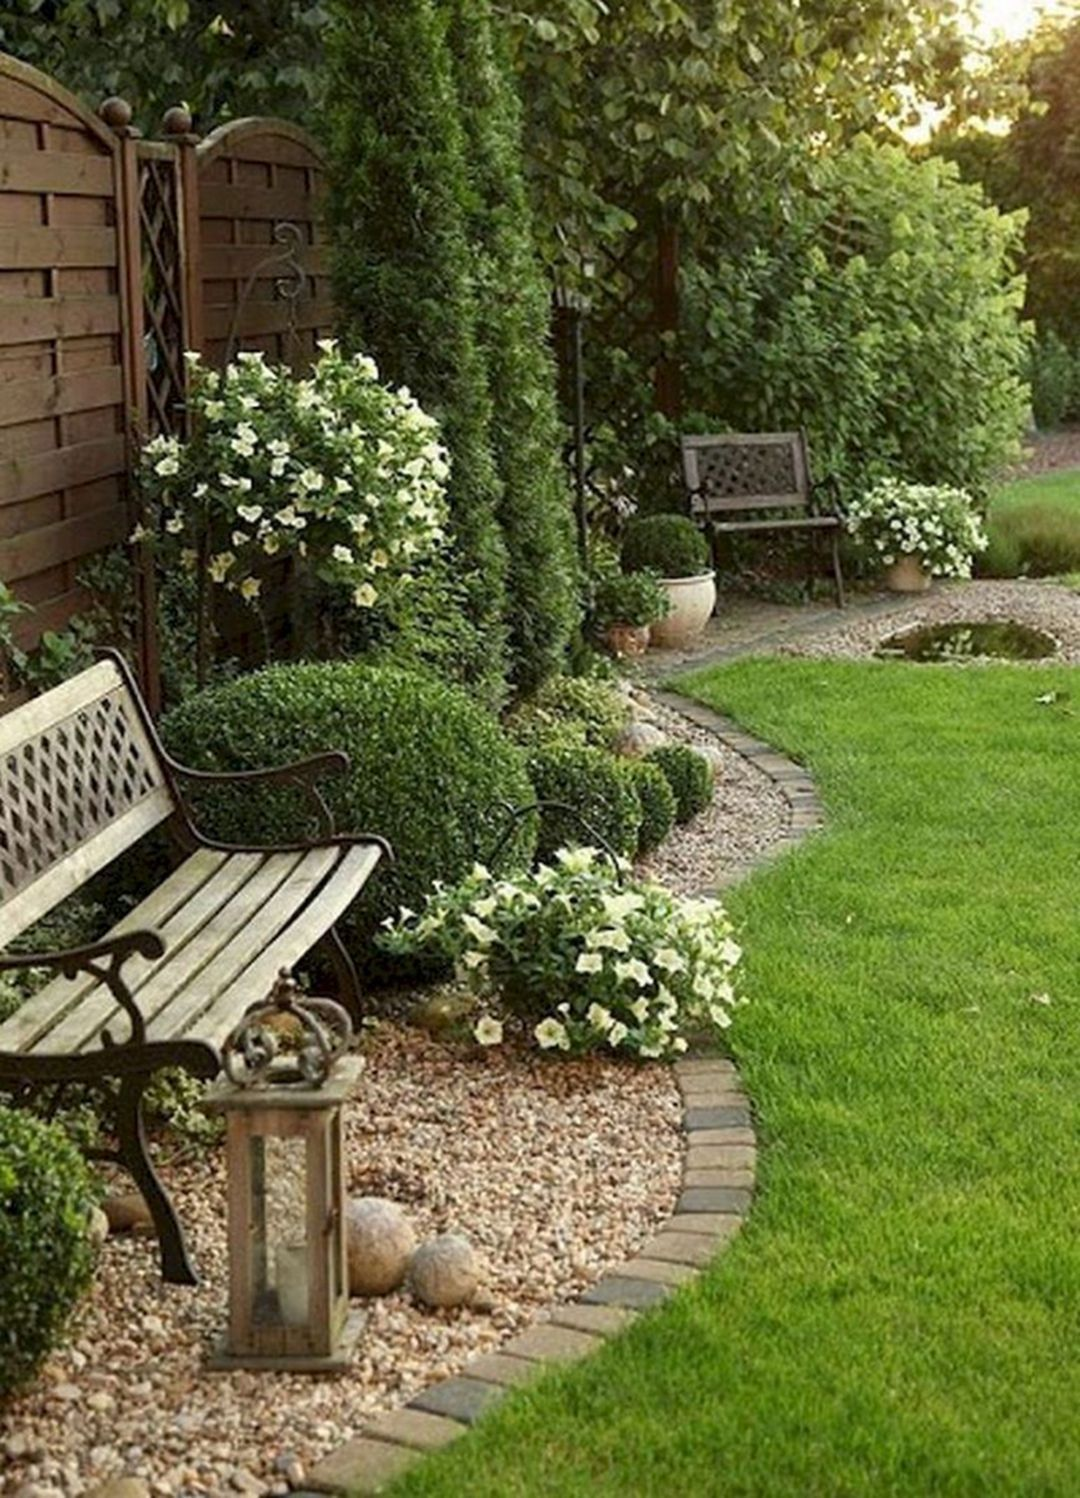 15 Amazing Front Yard Landscaping Ideas To Make Your Home More Awesome Decor It S Front Yard Landscaping Design Porch Landscaping Small Front Yard Landscaping